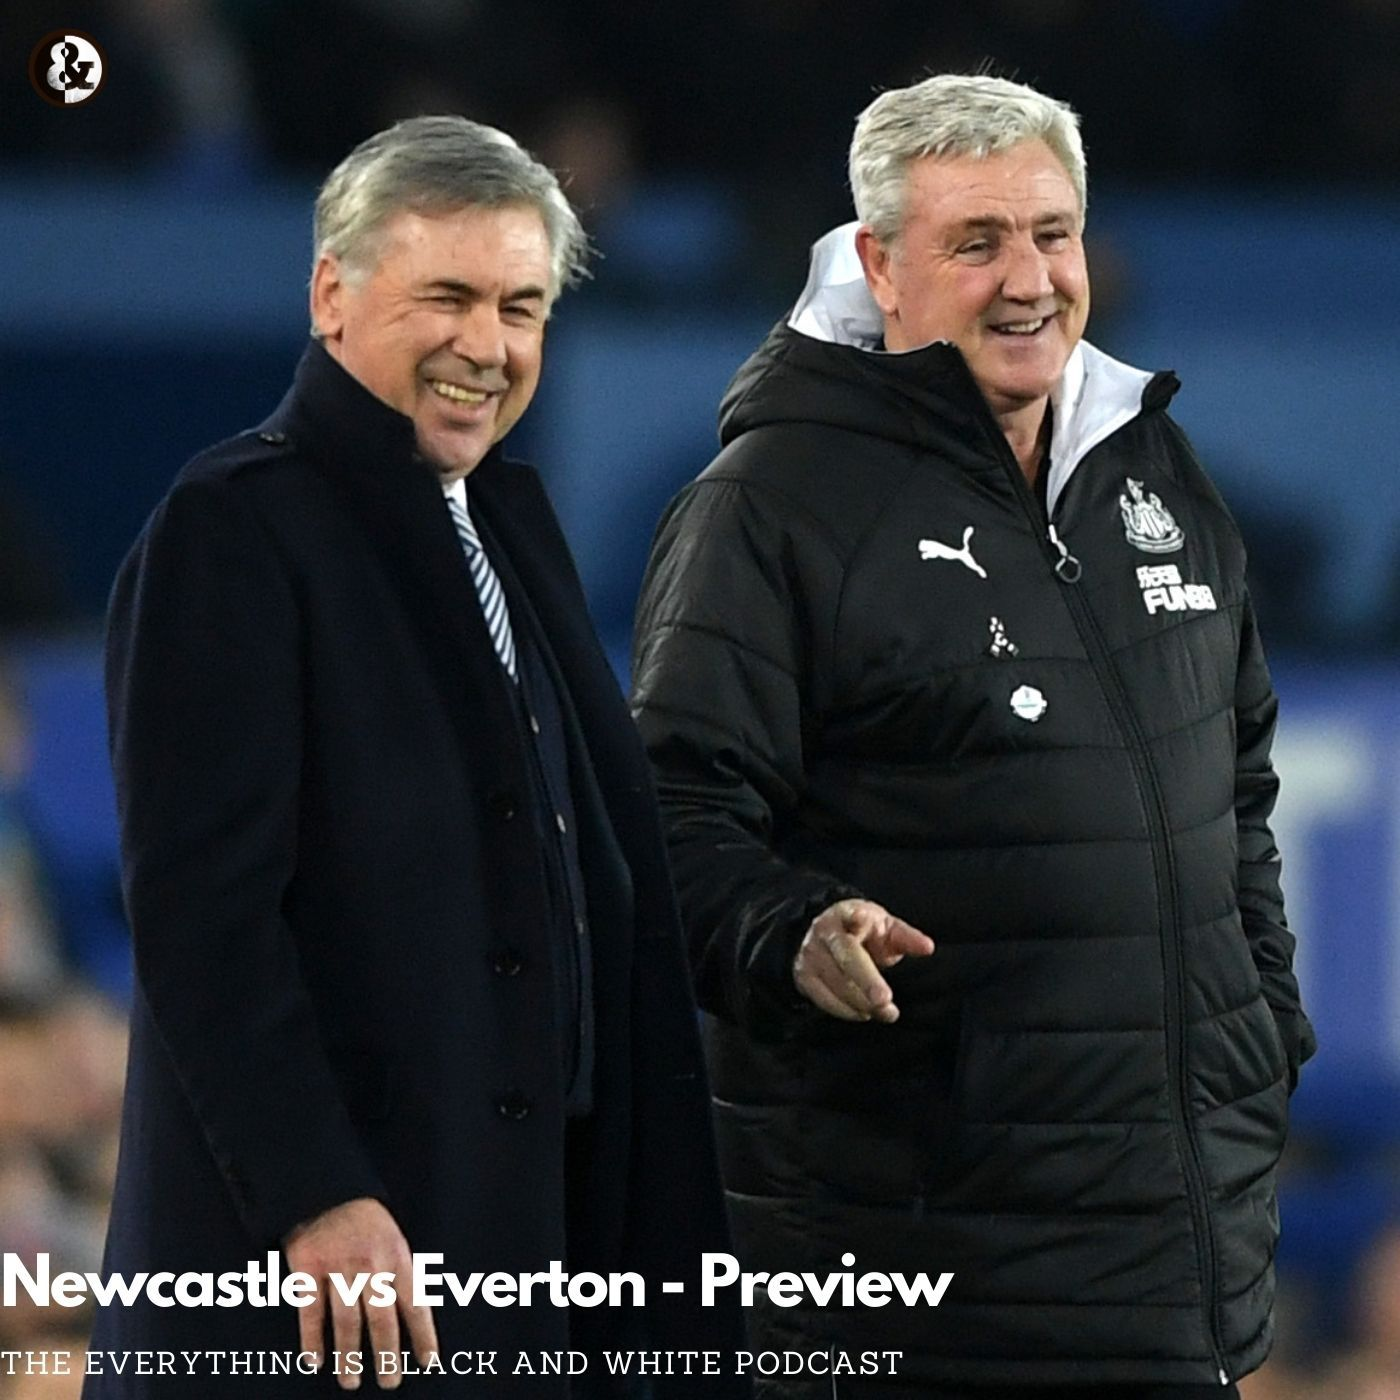 Newcastle vs Everton Preview - Major fitness doubt over Jamaal Lascelles